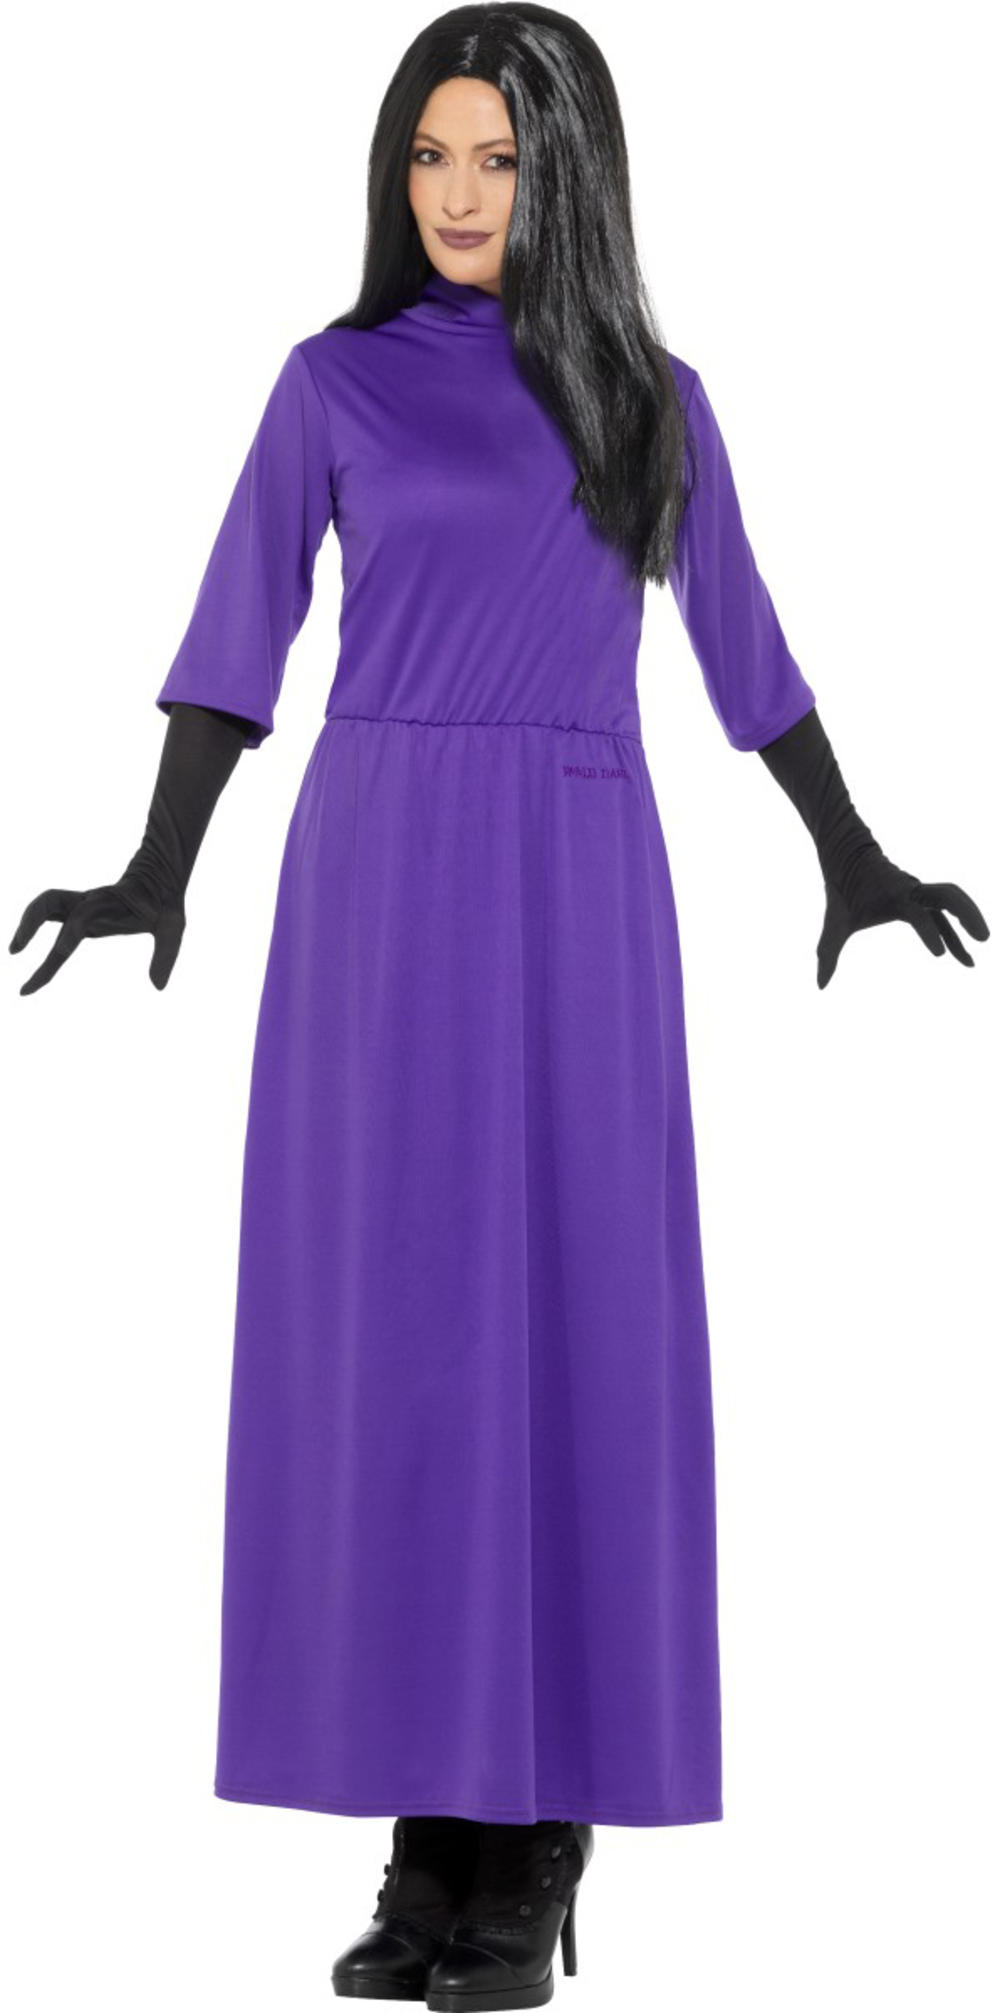 Roald Dahl The Witches Women's Costume